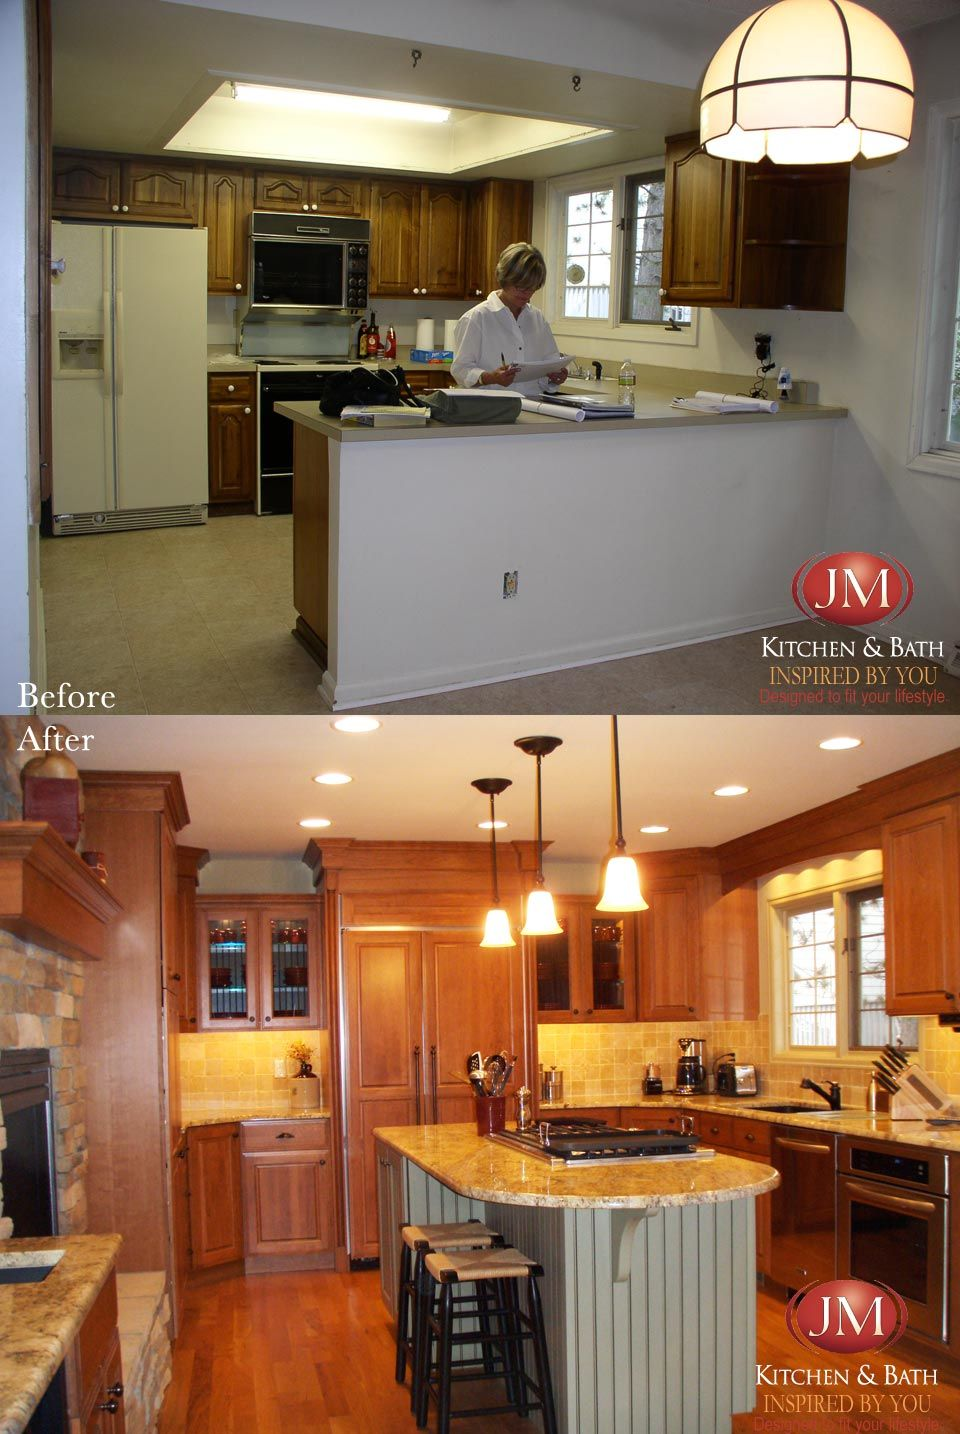 Before and after kitchen remodel #Denver #CO by @JM Kitchen and Bath ...